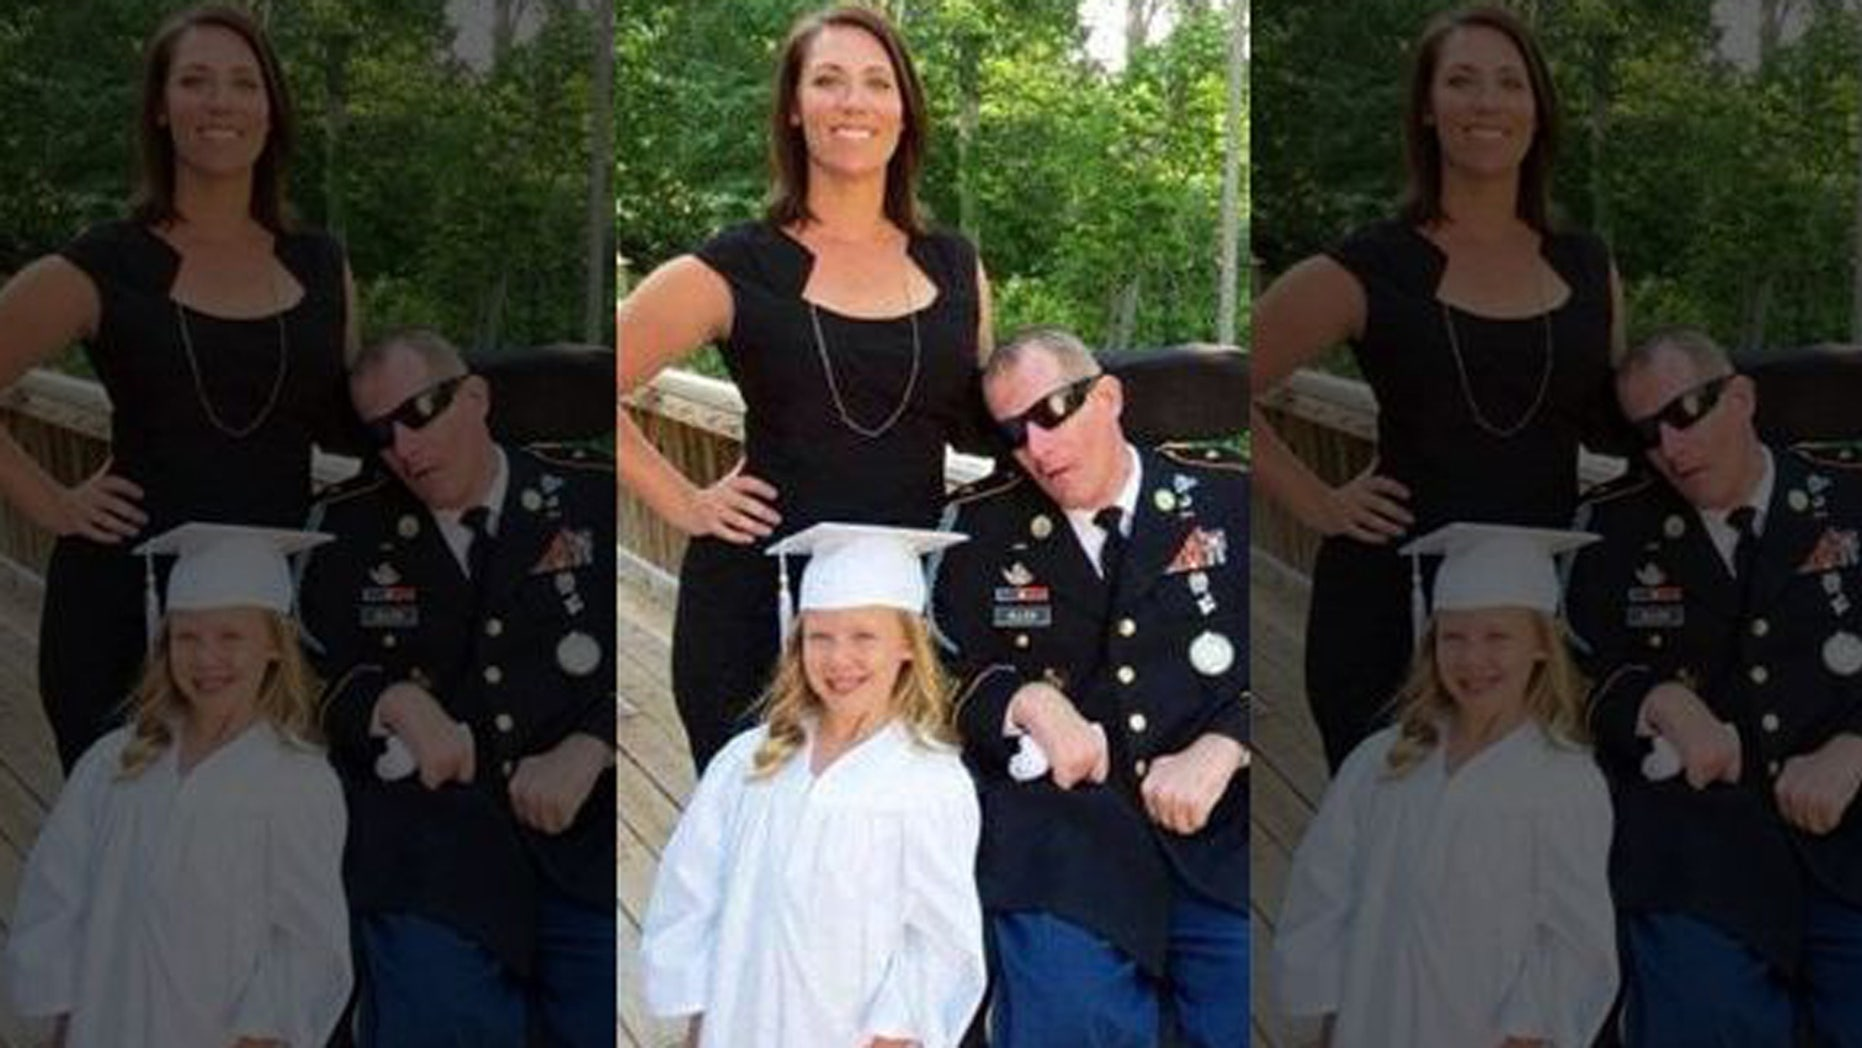 Prosecutors told a judge that they intend to call Shannon Allen to the stand to discuss a traumatic brain injury suffered by her husband when he was shot during a search mission for Bergdahl